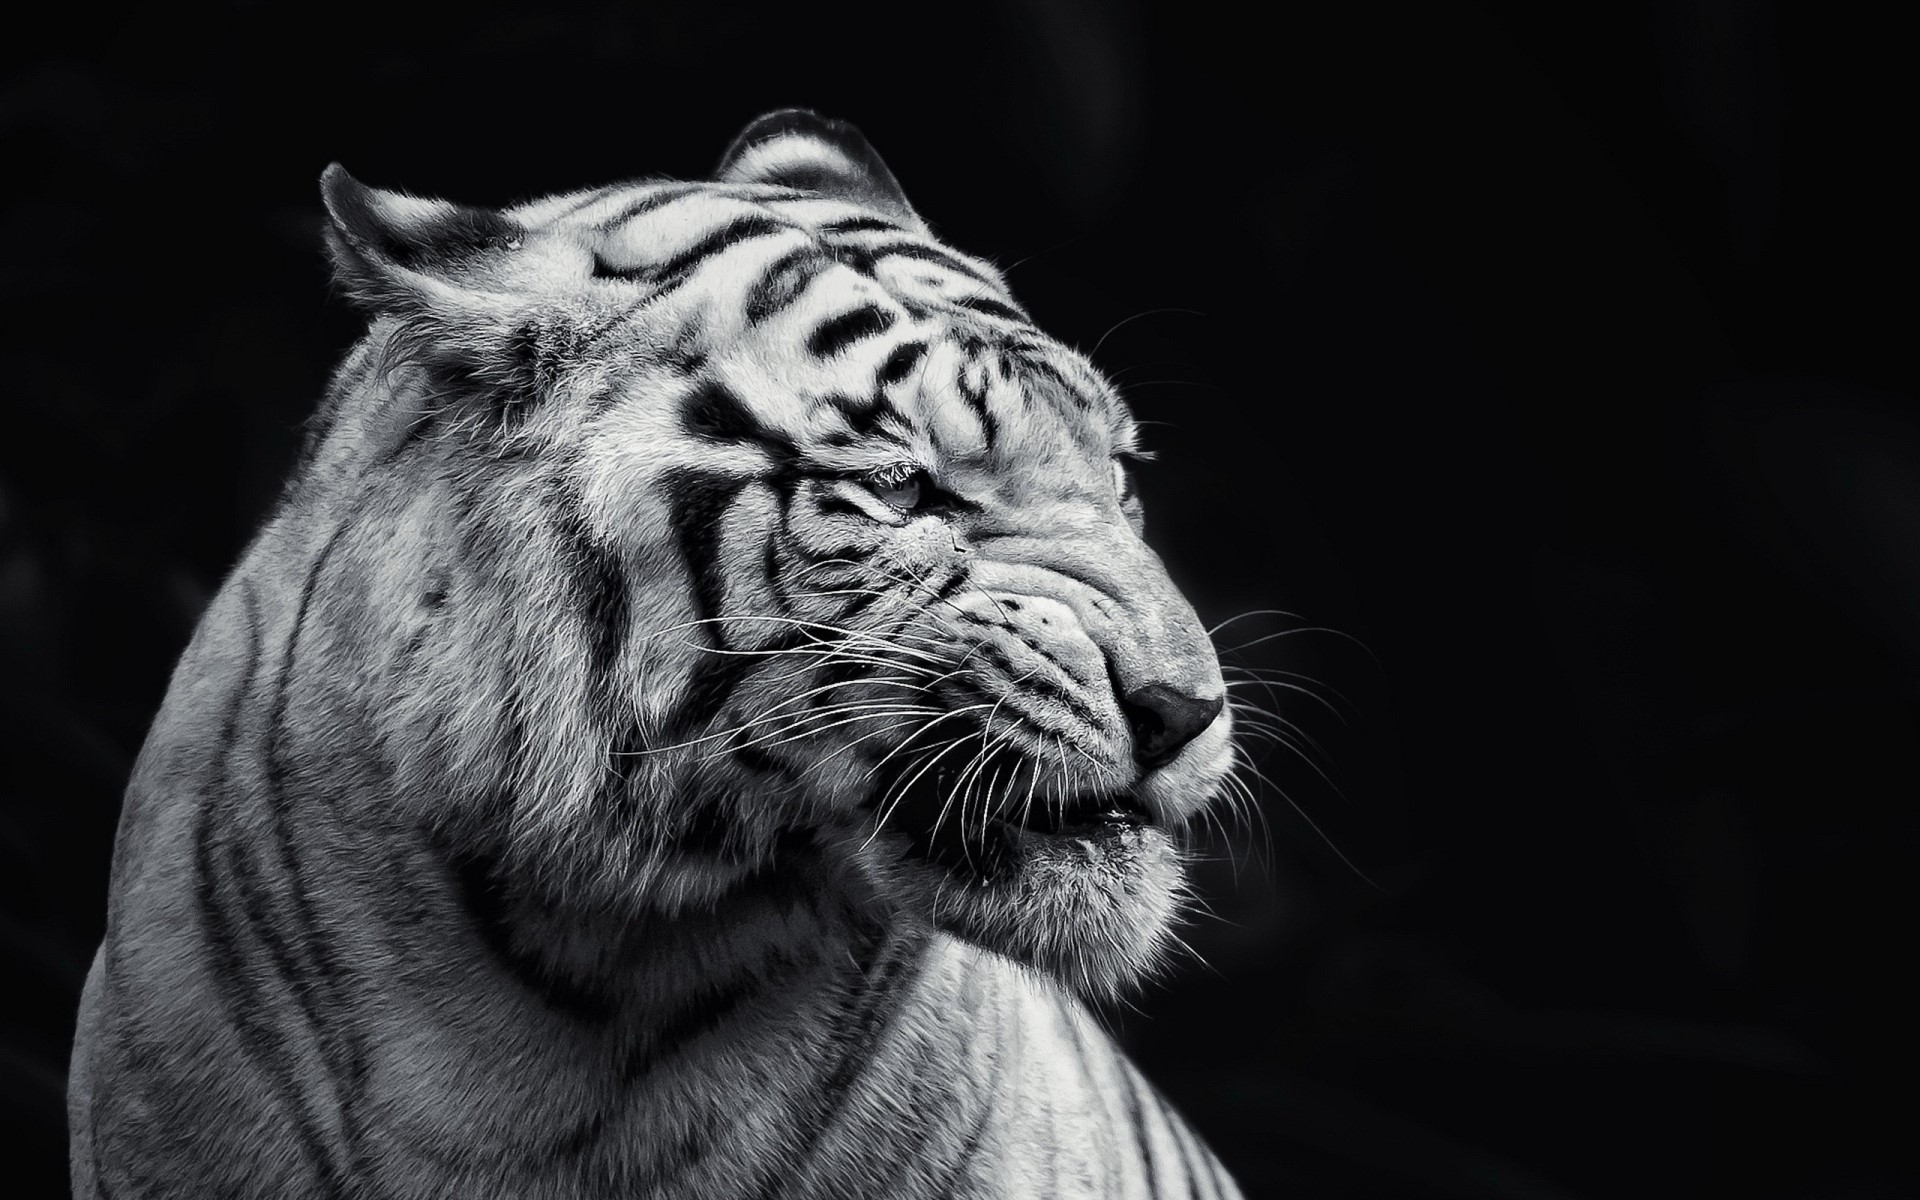 Tiger Wallpapers for Laptop